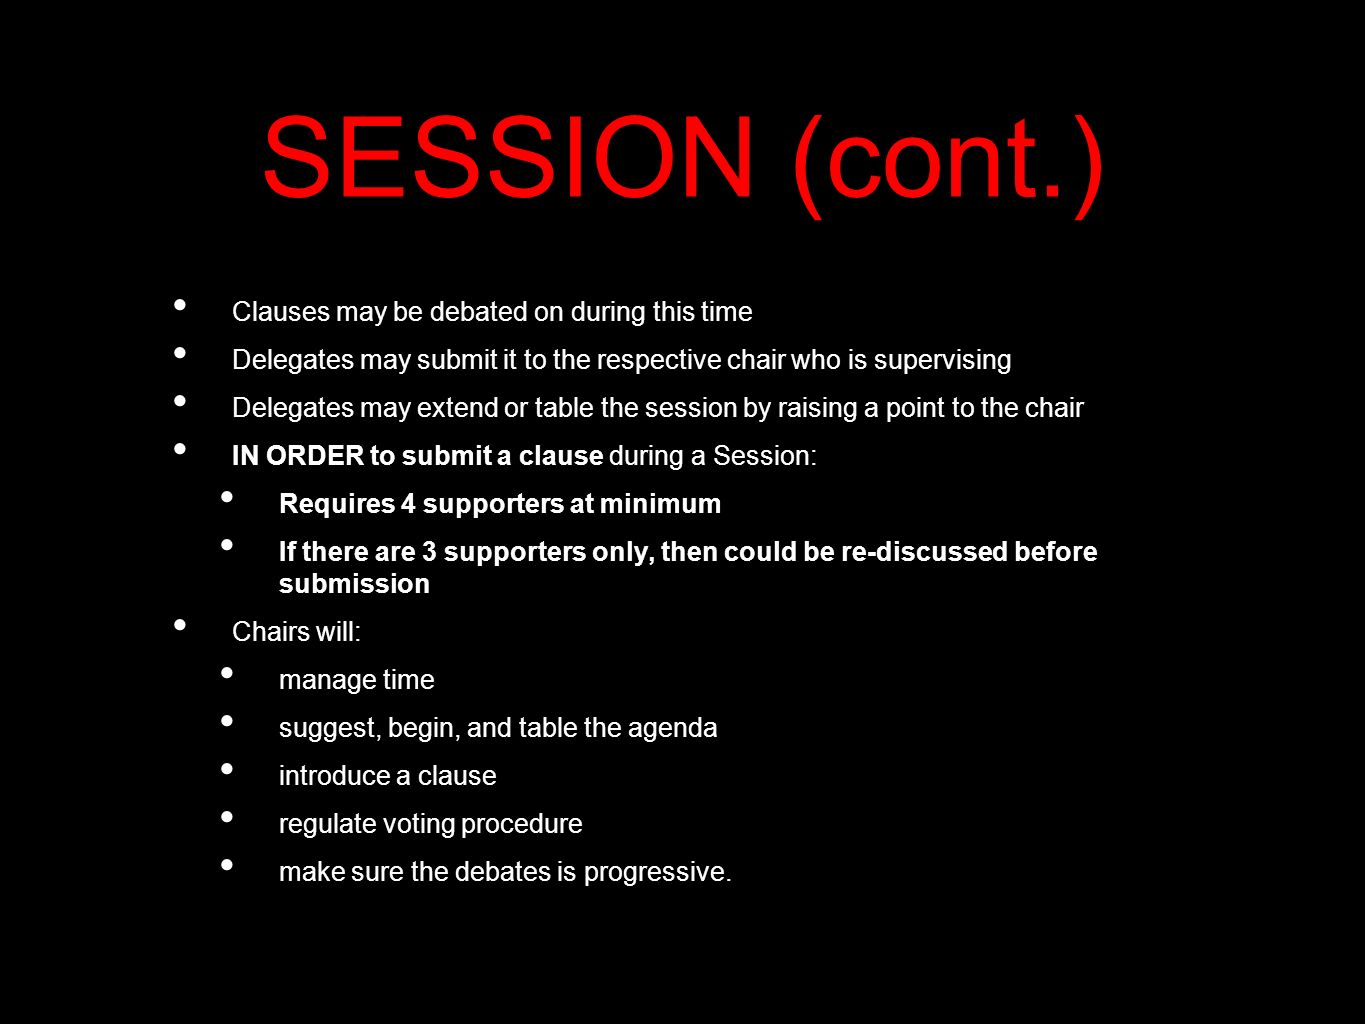 SESSION (cont.) Clauses may be debated on during this time Delegates may submit it to the respective chair who is supervising Delegates may extend or